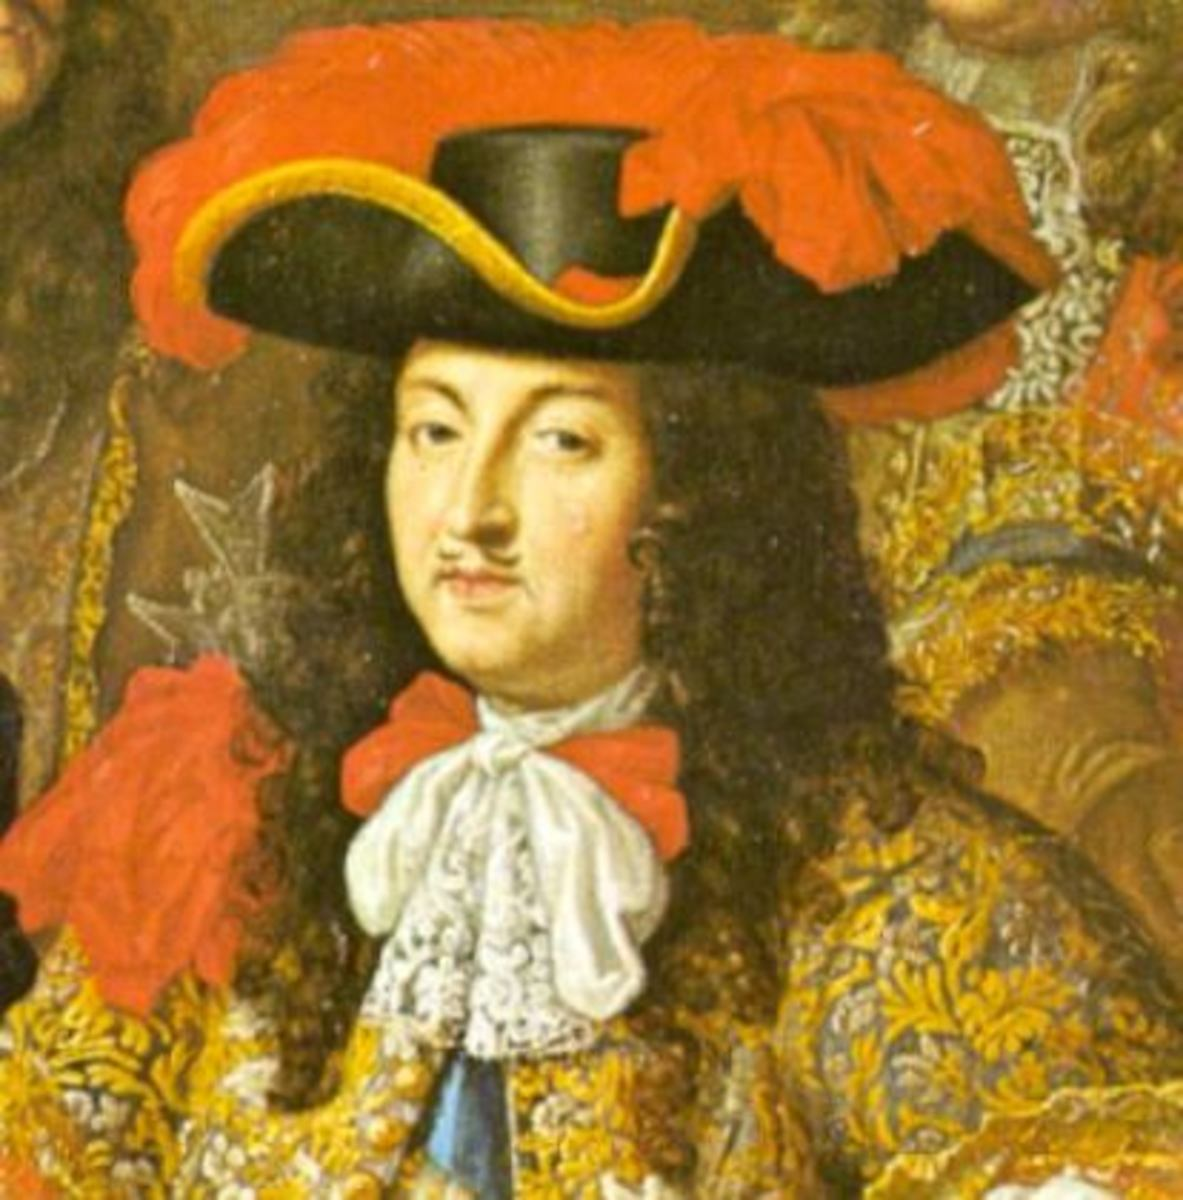 Painting of French King Louis XIV in 1667